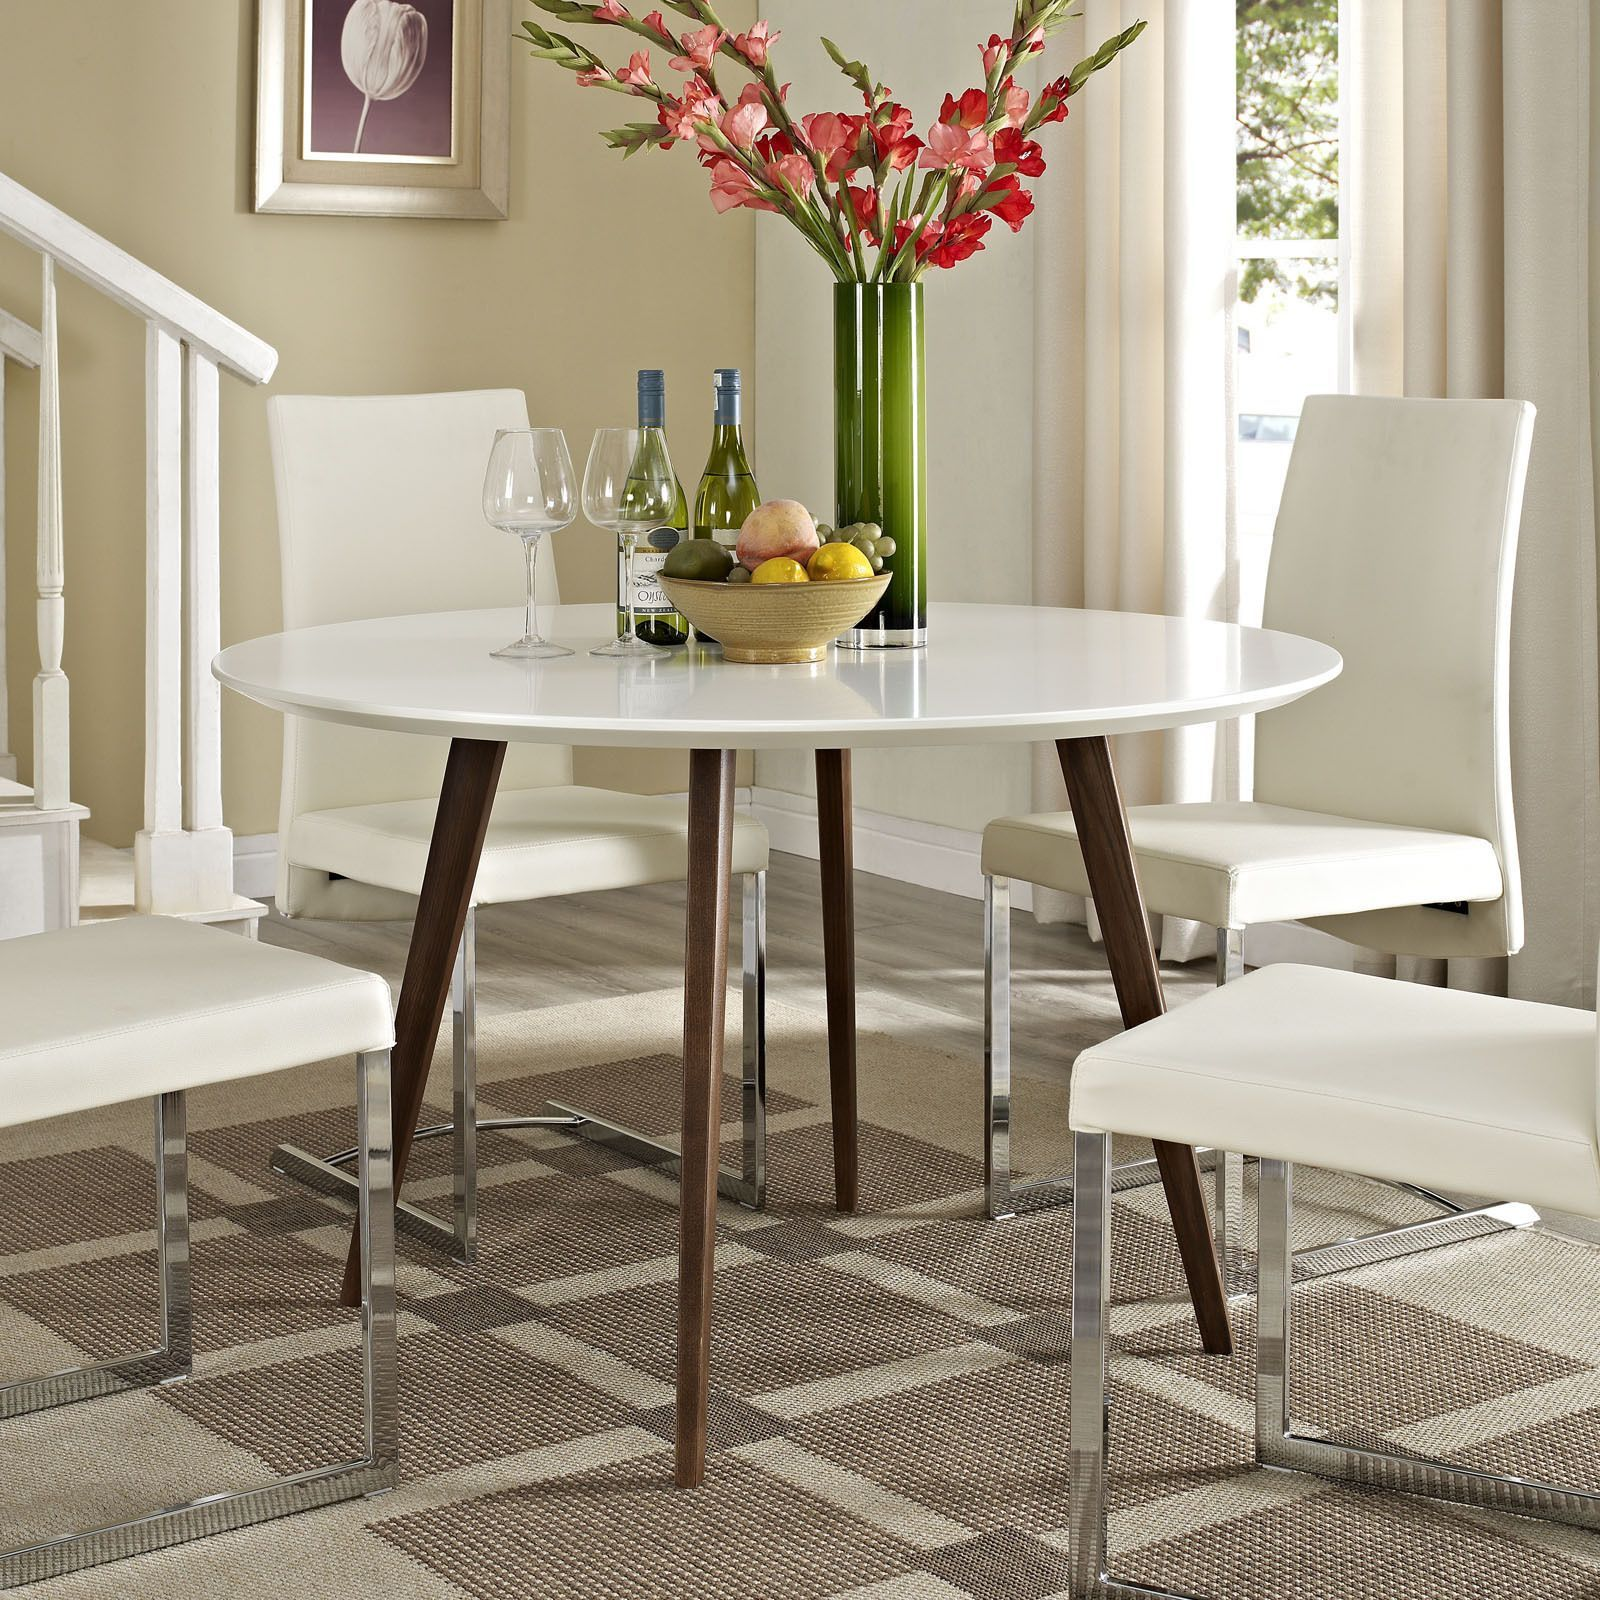 Incorporate Mid Century Modern Style Into Your Dining Decor With This  Artistic Canvas Dining Table